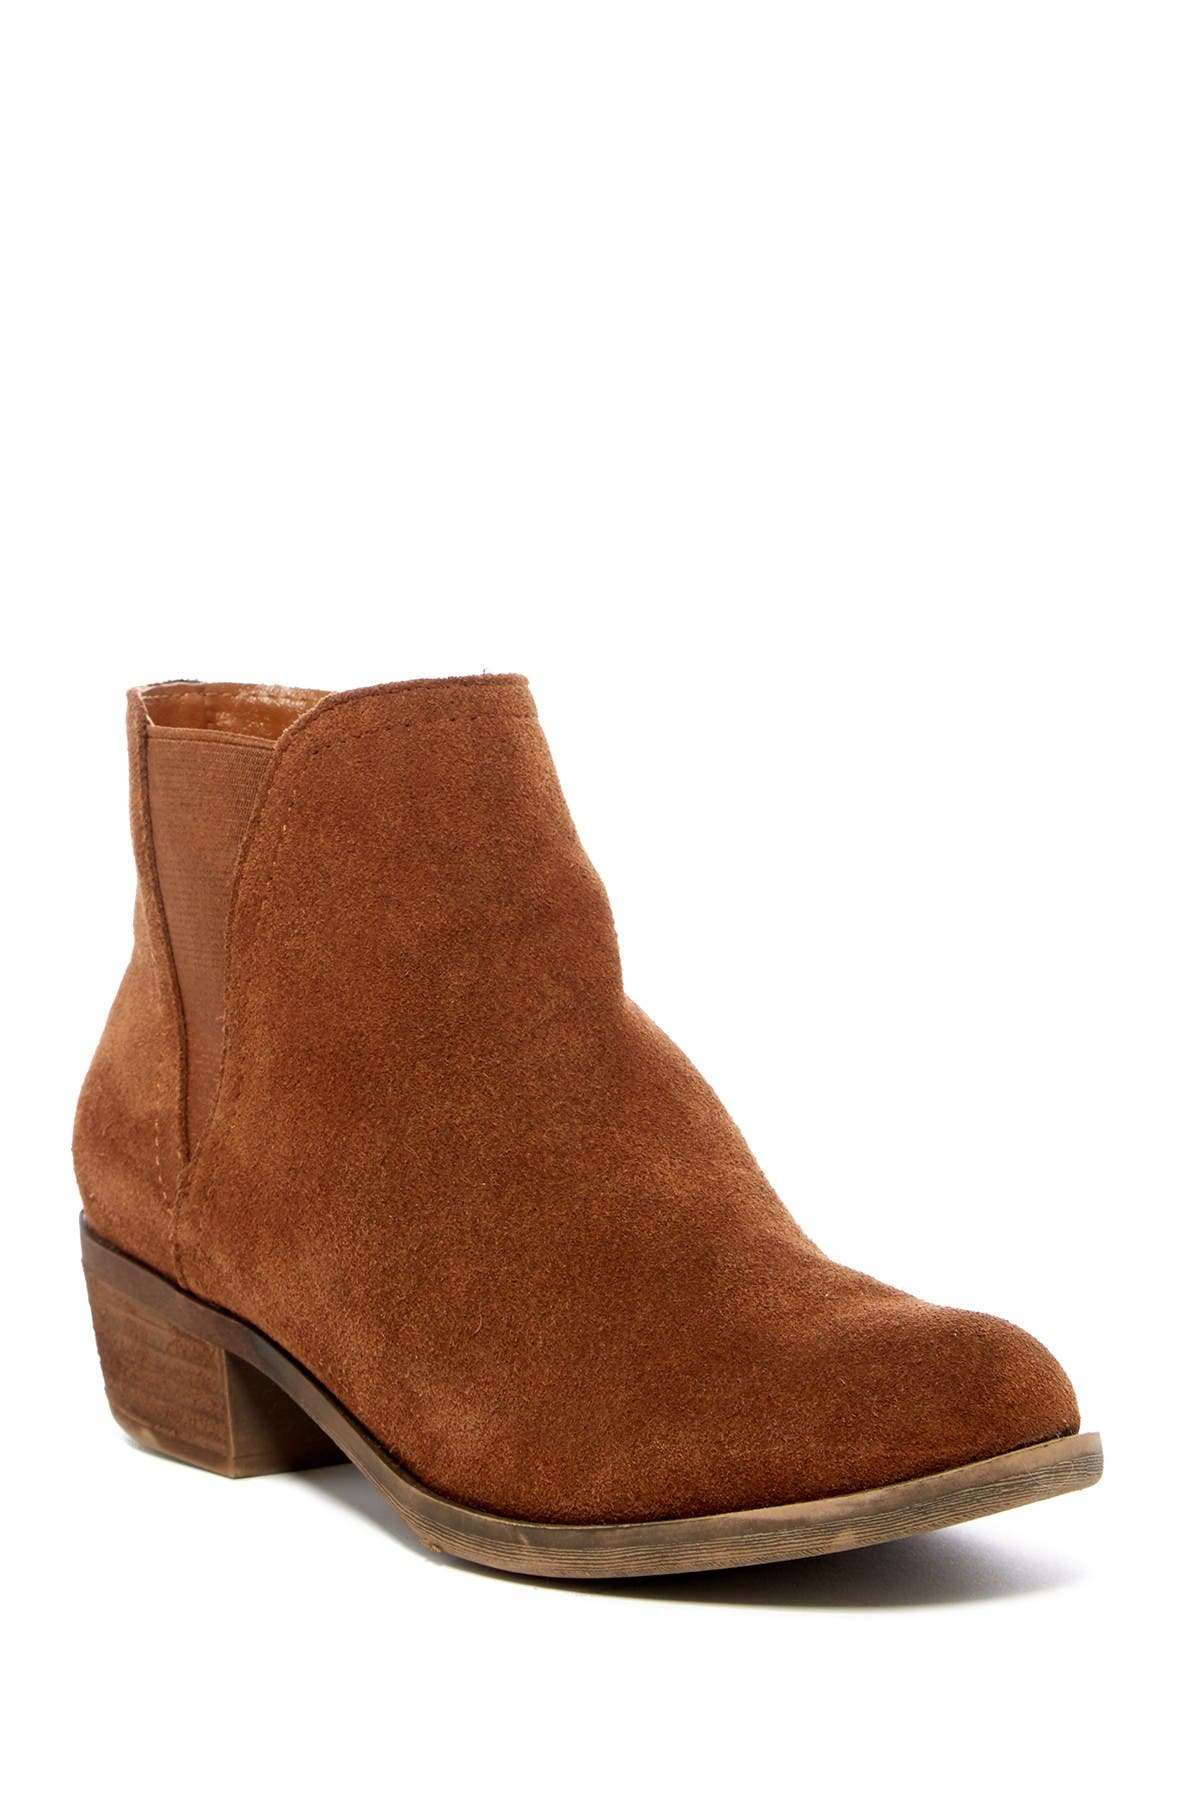 Image of Kensie Garry Suede Ankle Bootie